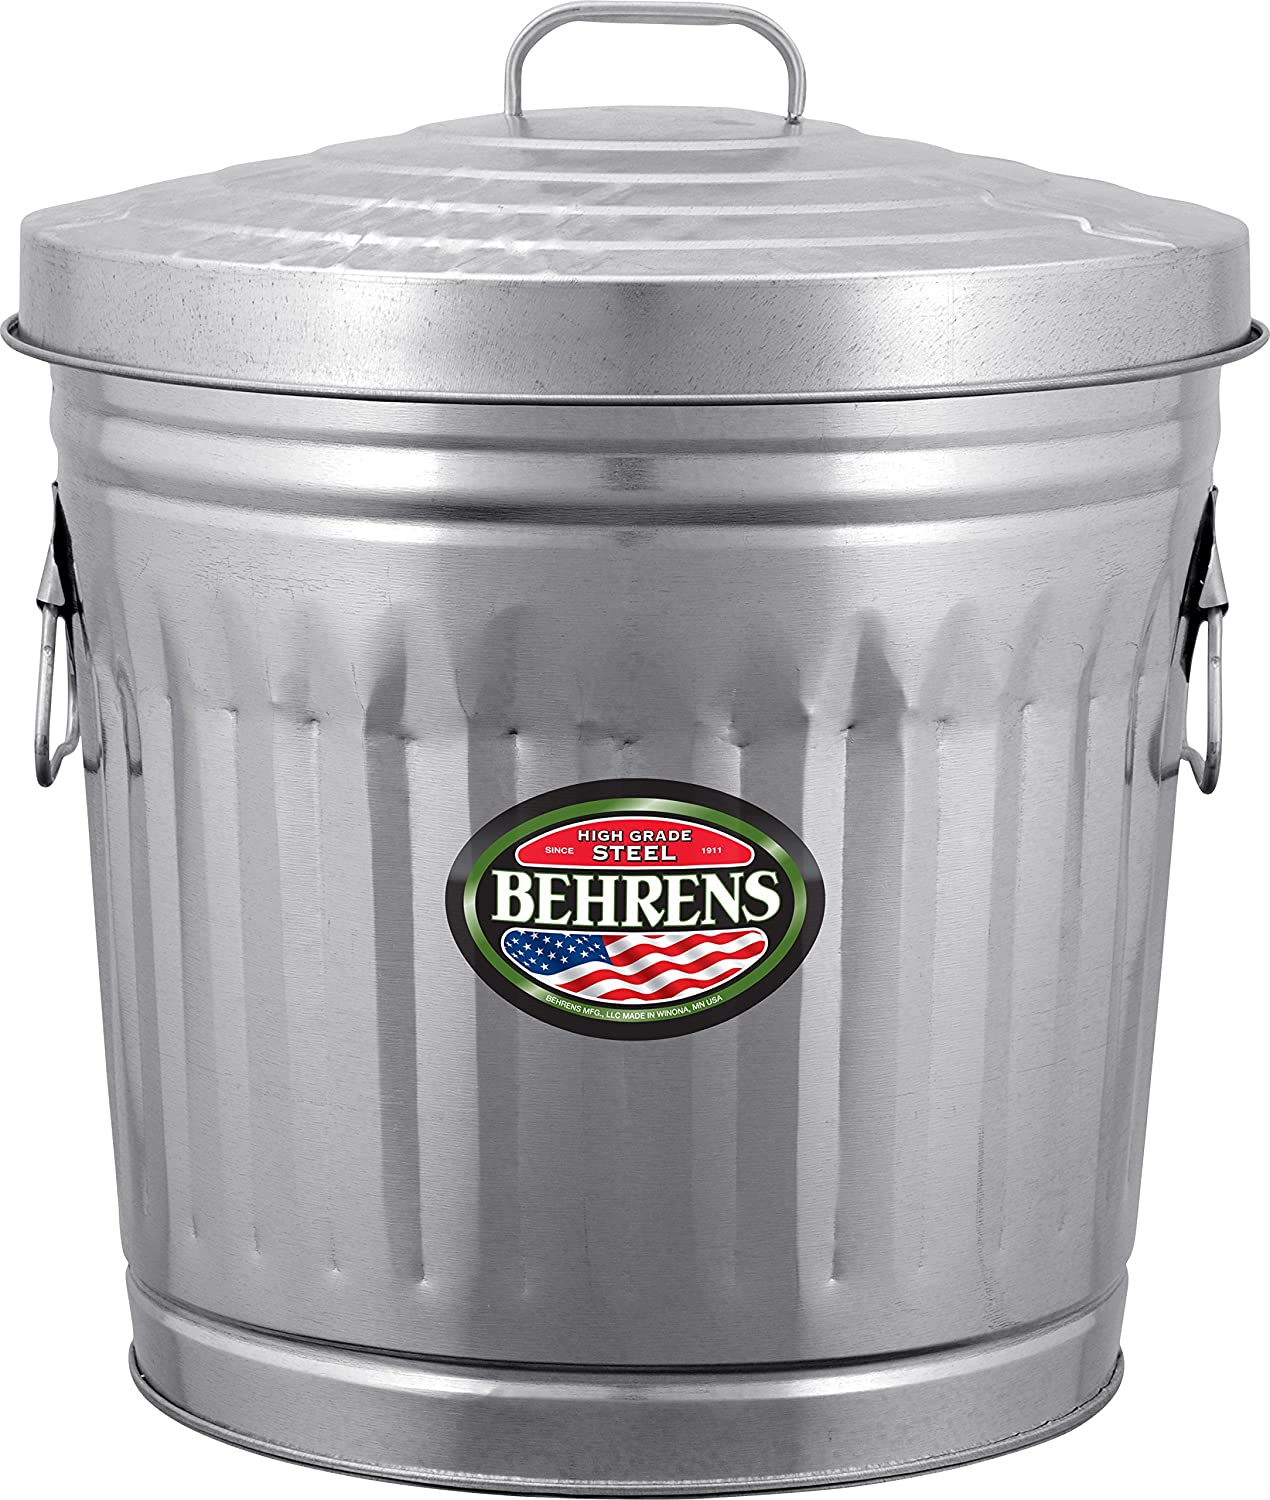 Behrens Manufacturing 6210 Galvanized Steel Trash Can, 10 gal